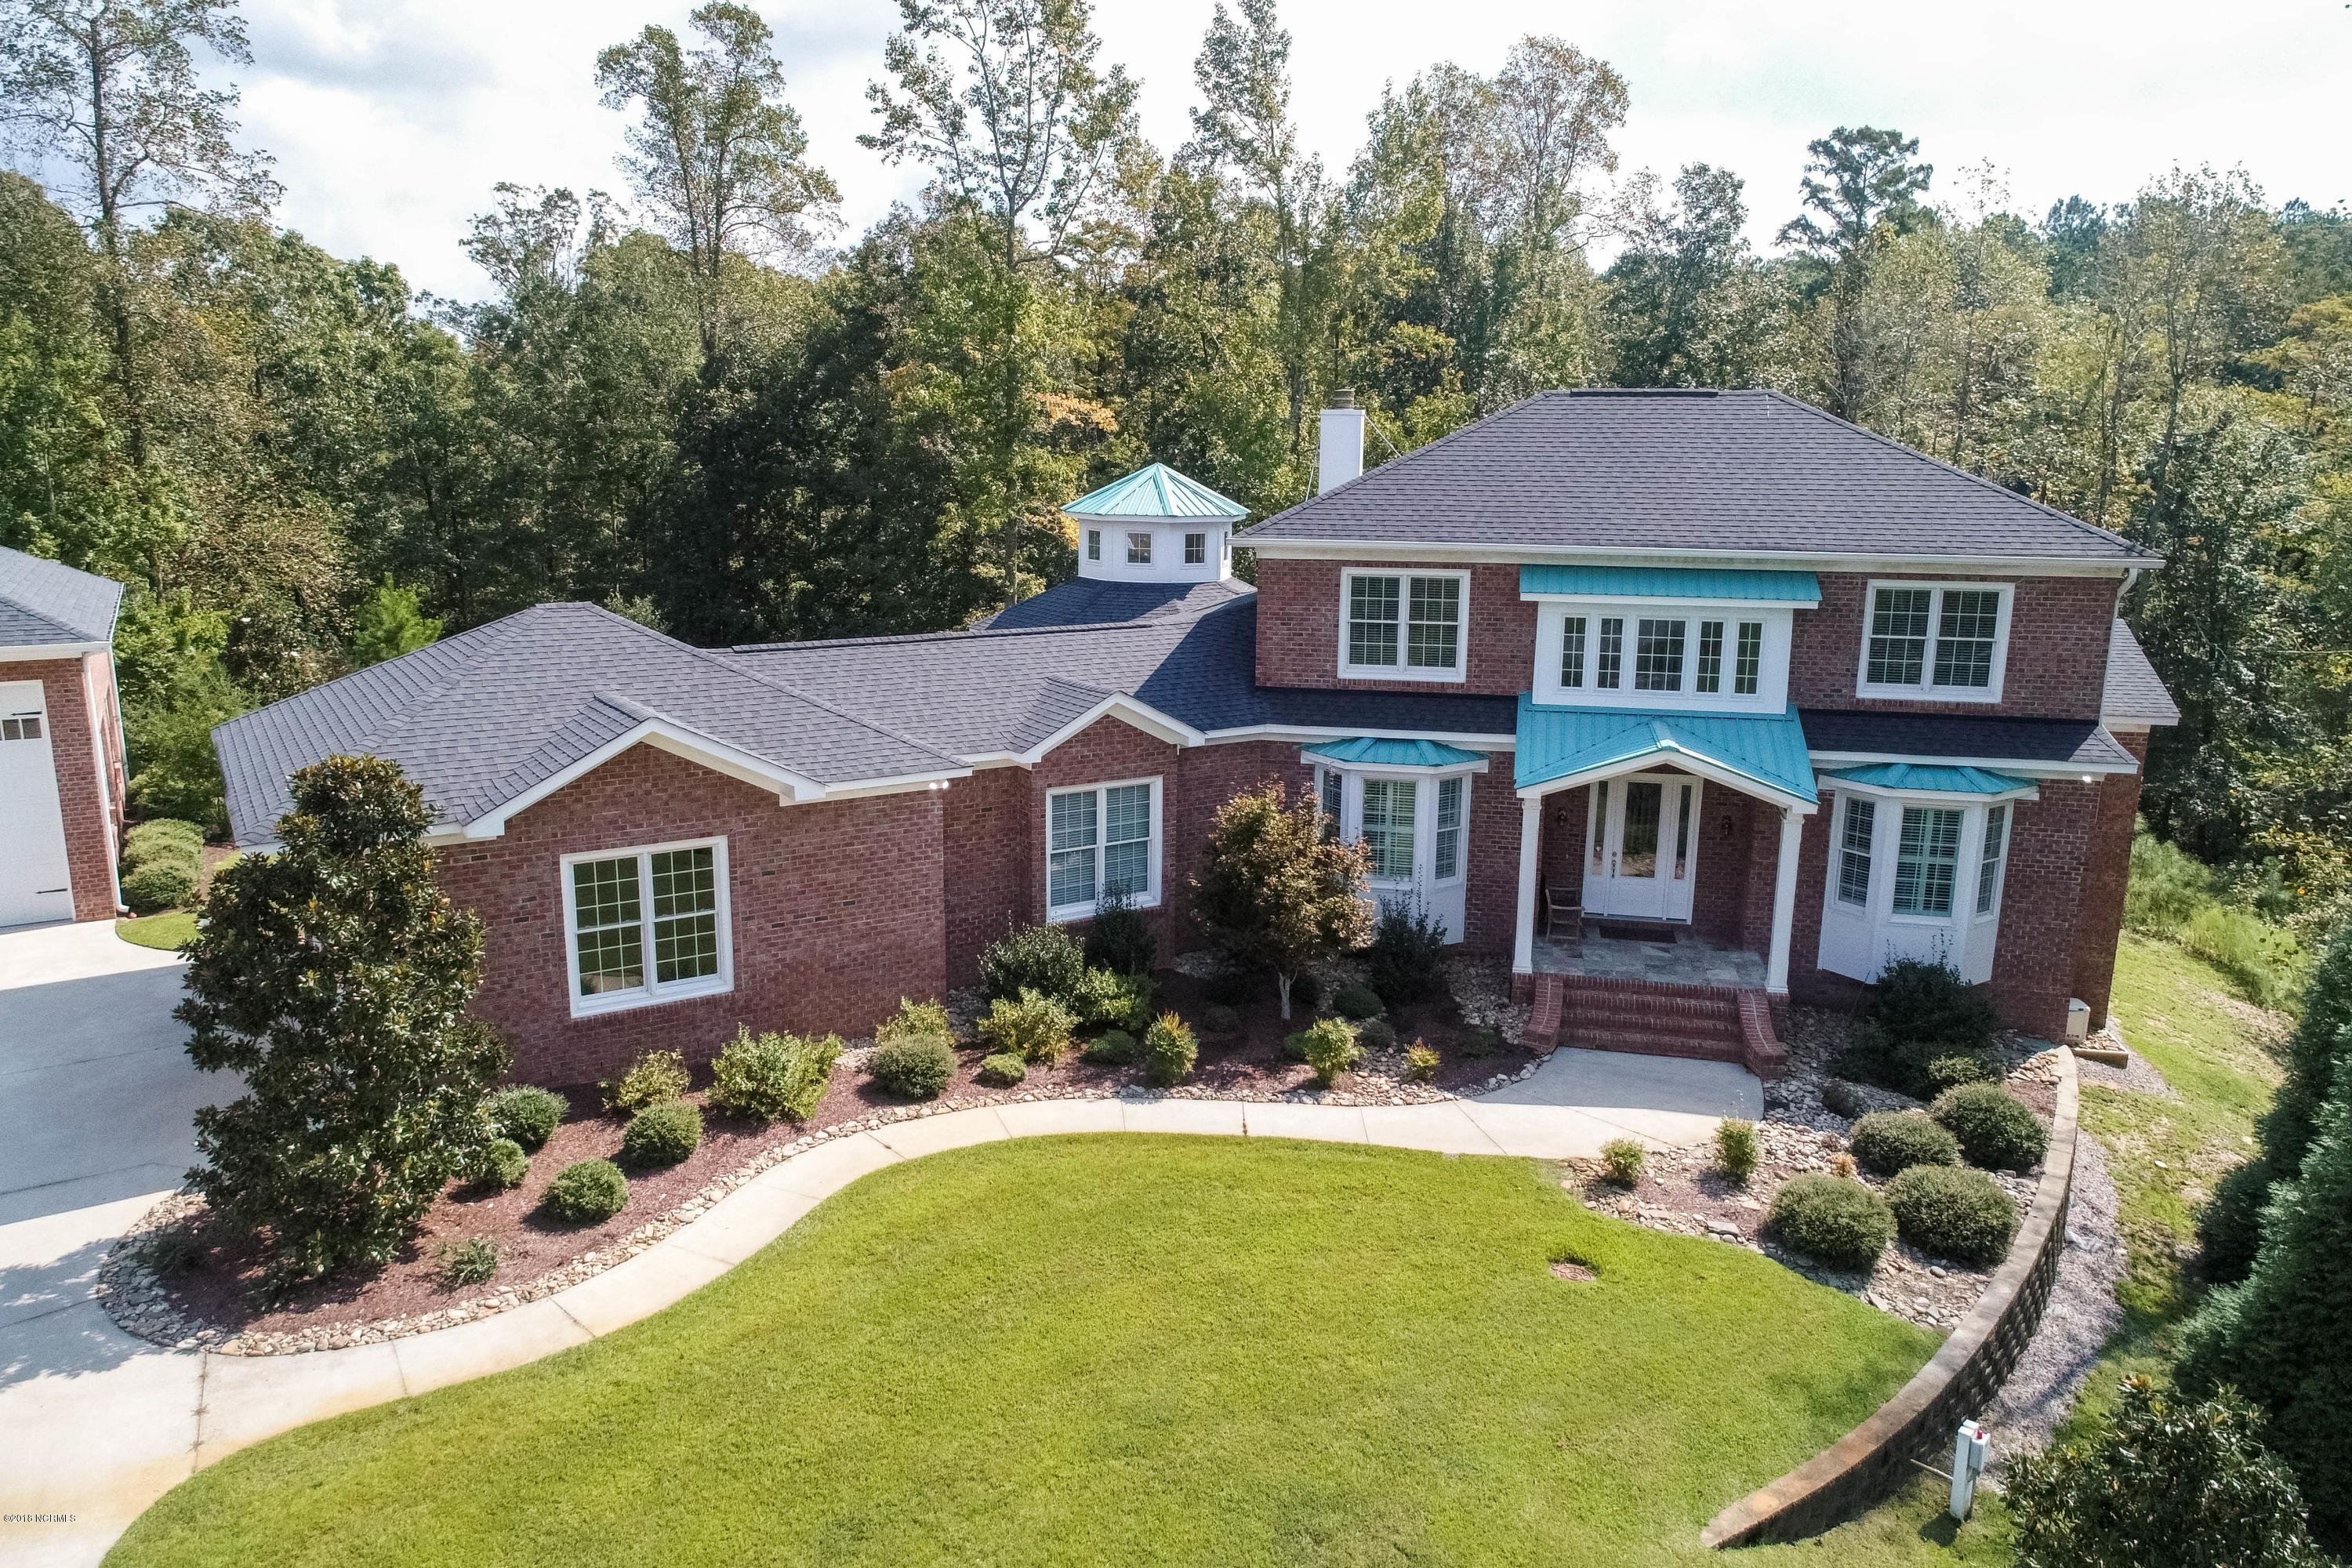 Property for sale at 109 Nanticoke Court, Chocowinity,  NC 27817